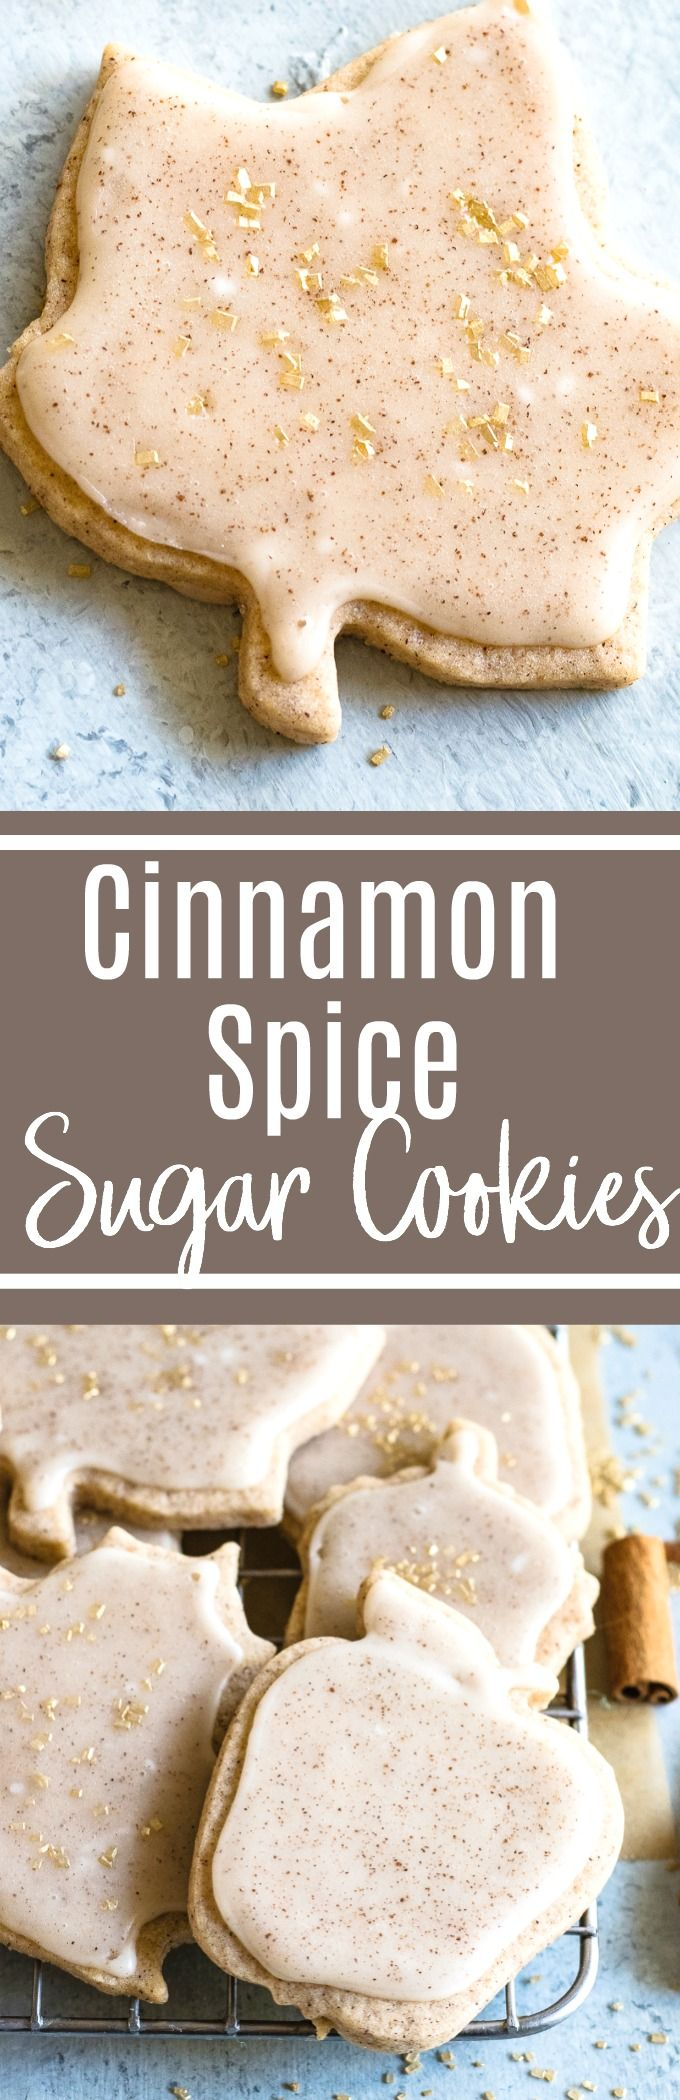 Cinnamon Sugar Cookies. These soft and buttery sugar cookies are loaded up cinnamon and spice plus they're topped with cinnamon icing for even more flavor! Perfect for Fall #cinnamonsugarcookies